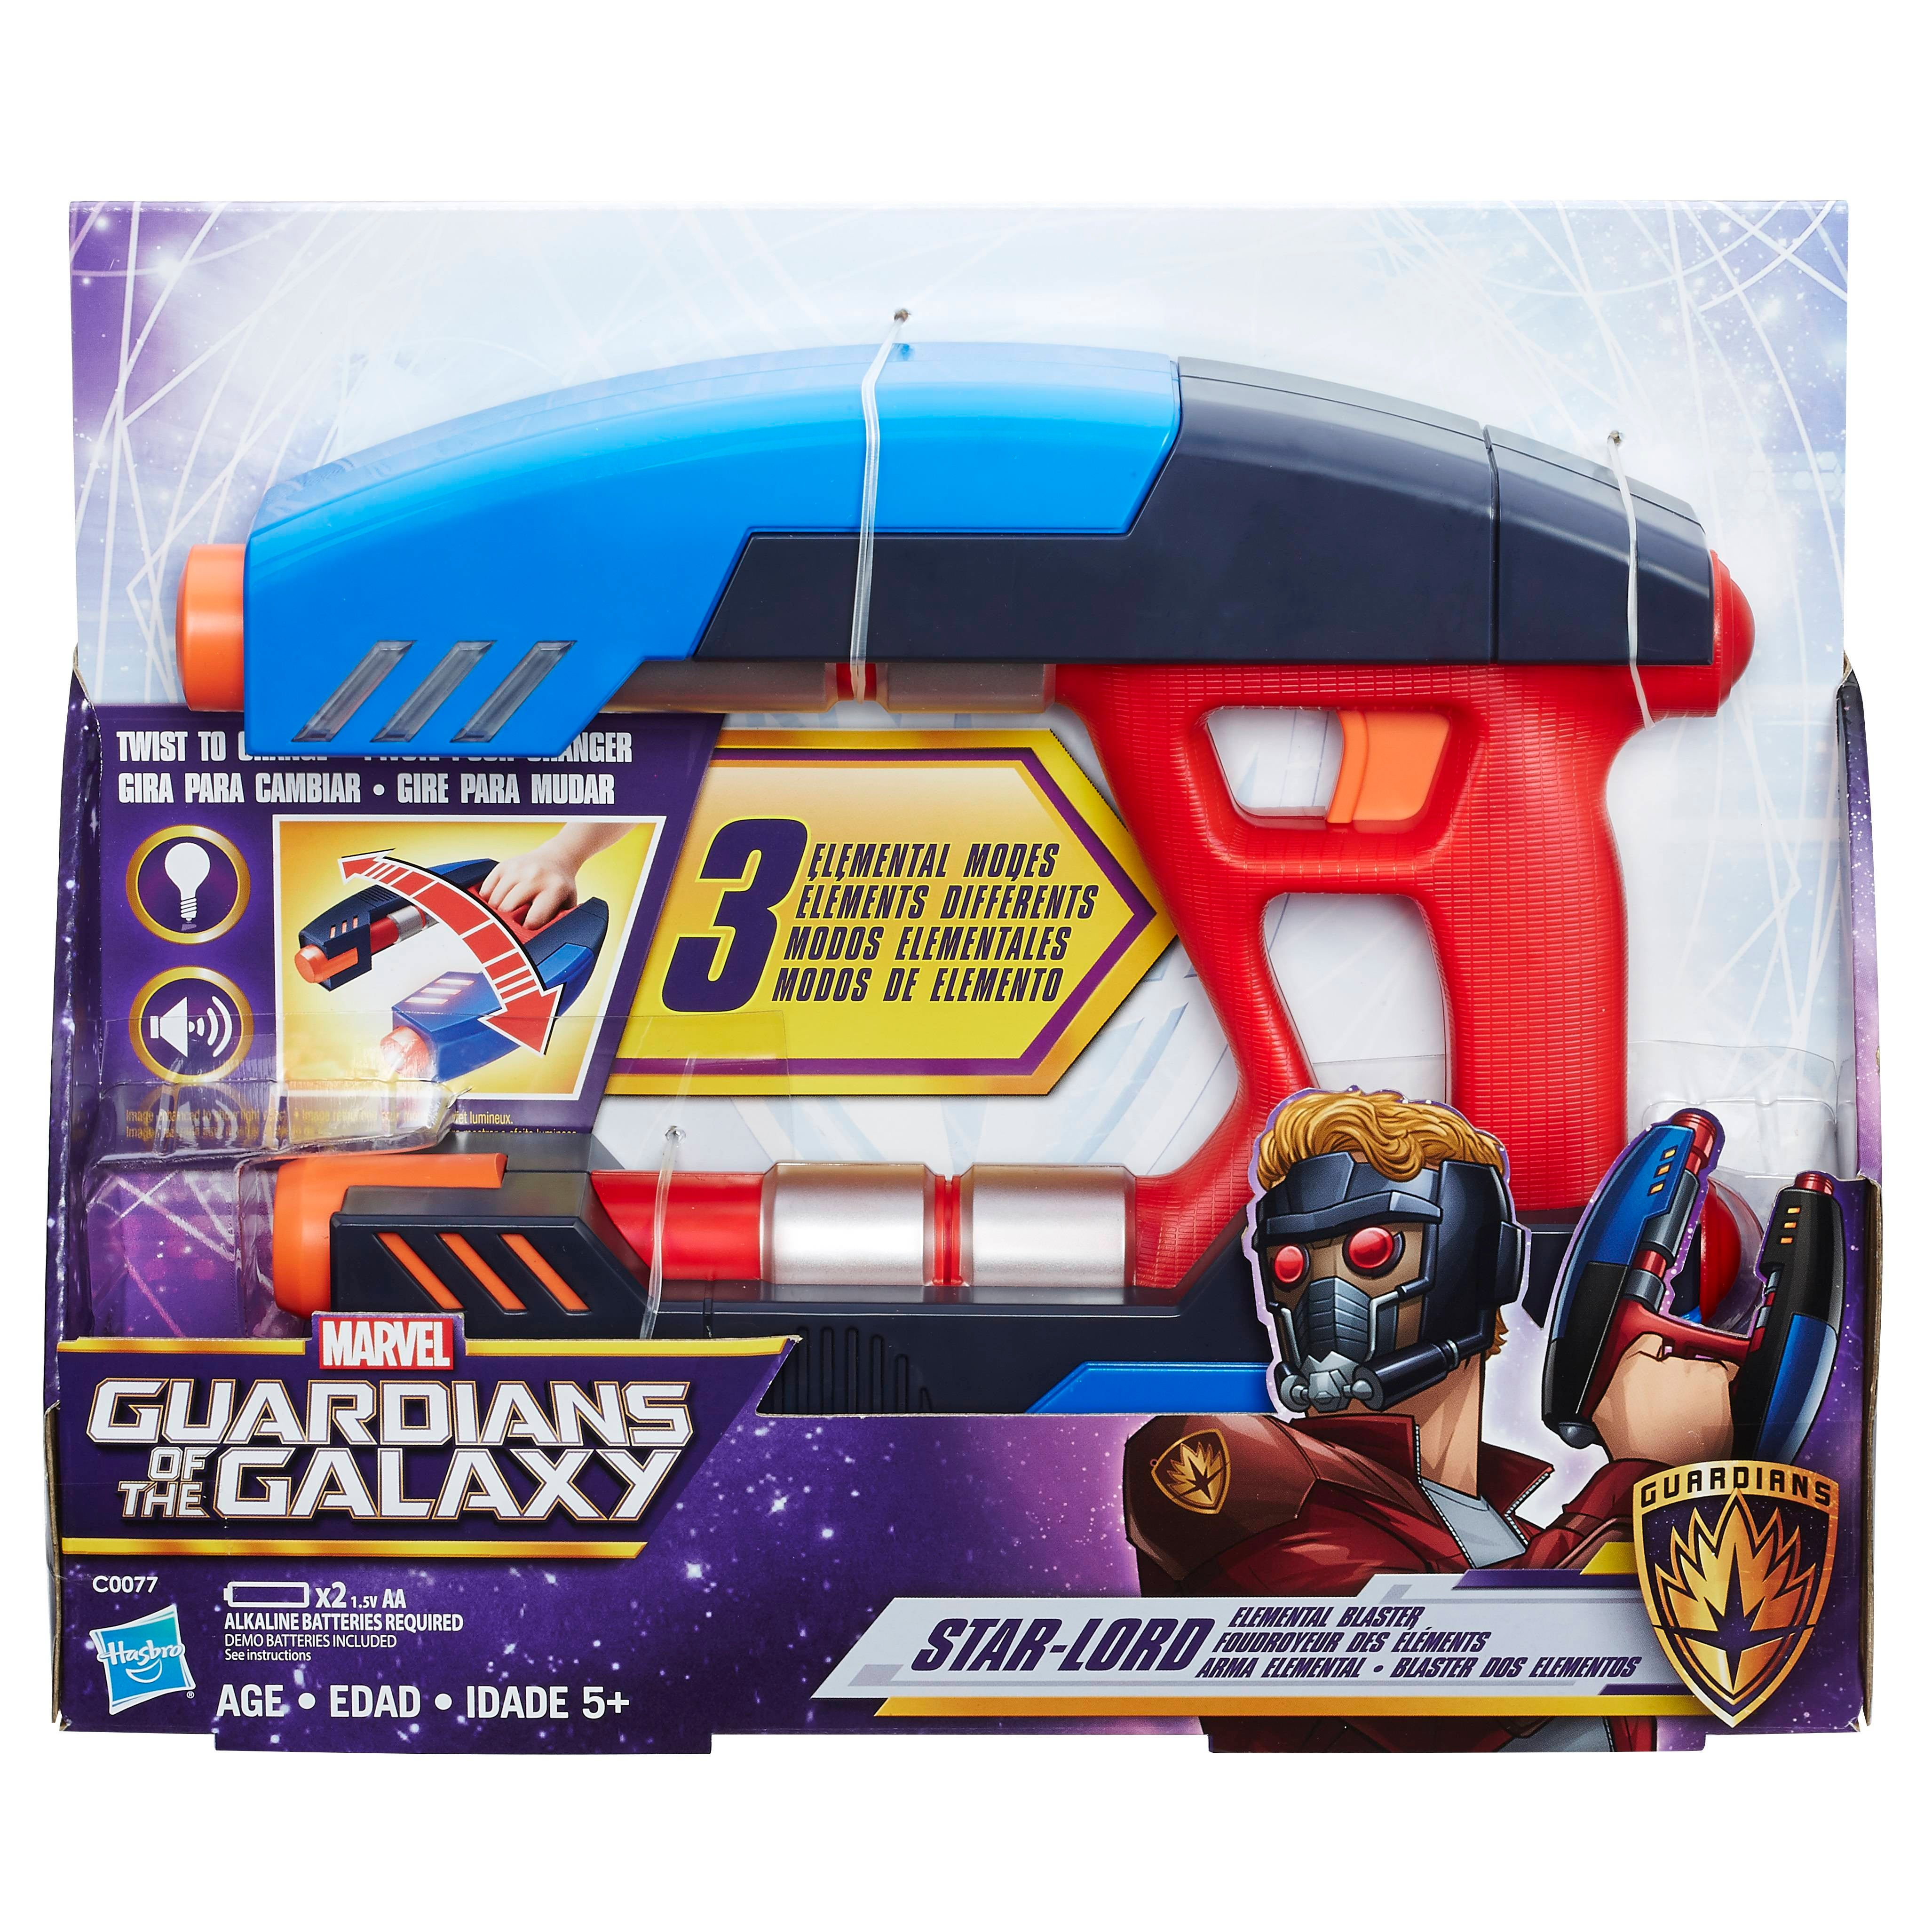 MARVEL GUARDIANS OF THE GALAXY STAR-LORD ELEMENTAL BLASTER - in pkg